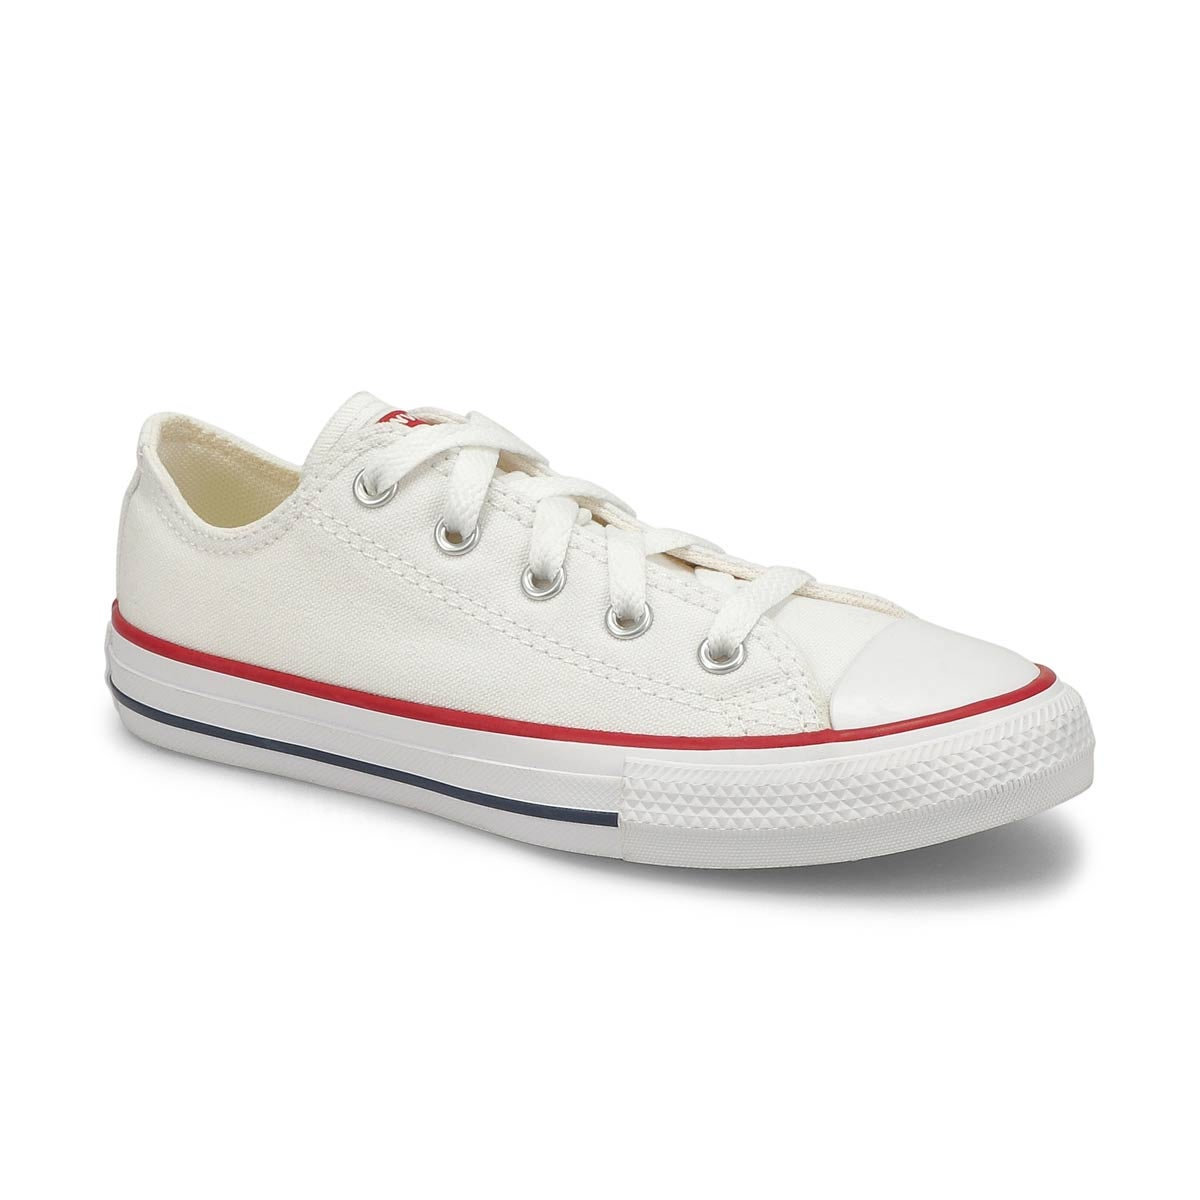 Espadrilles CHUCK TAYLOR ALL STAR, blanc, enfants